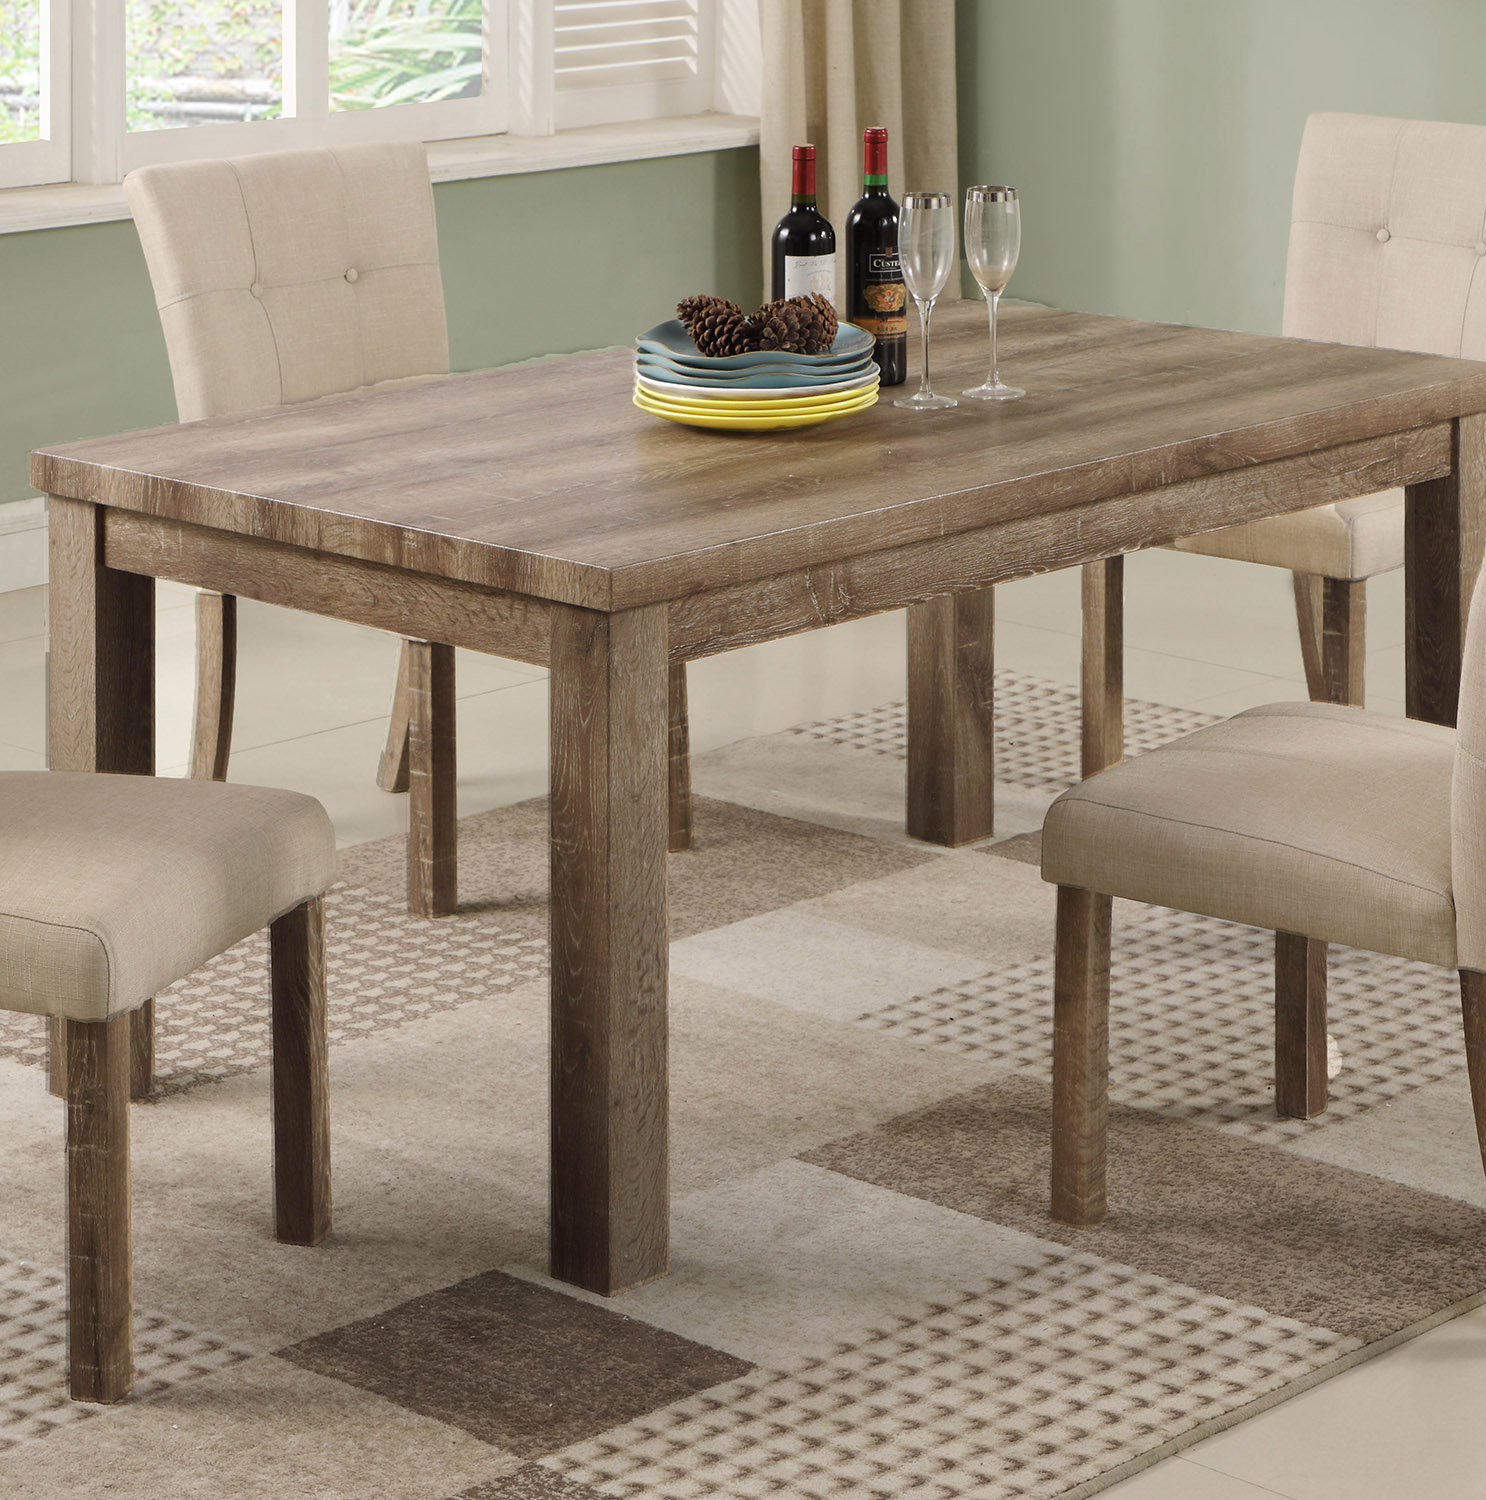 Ebay With Regard To Well Known Ephraim 5 Piece Dining Sets (View 5 of 20)